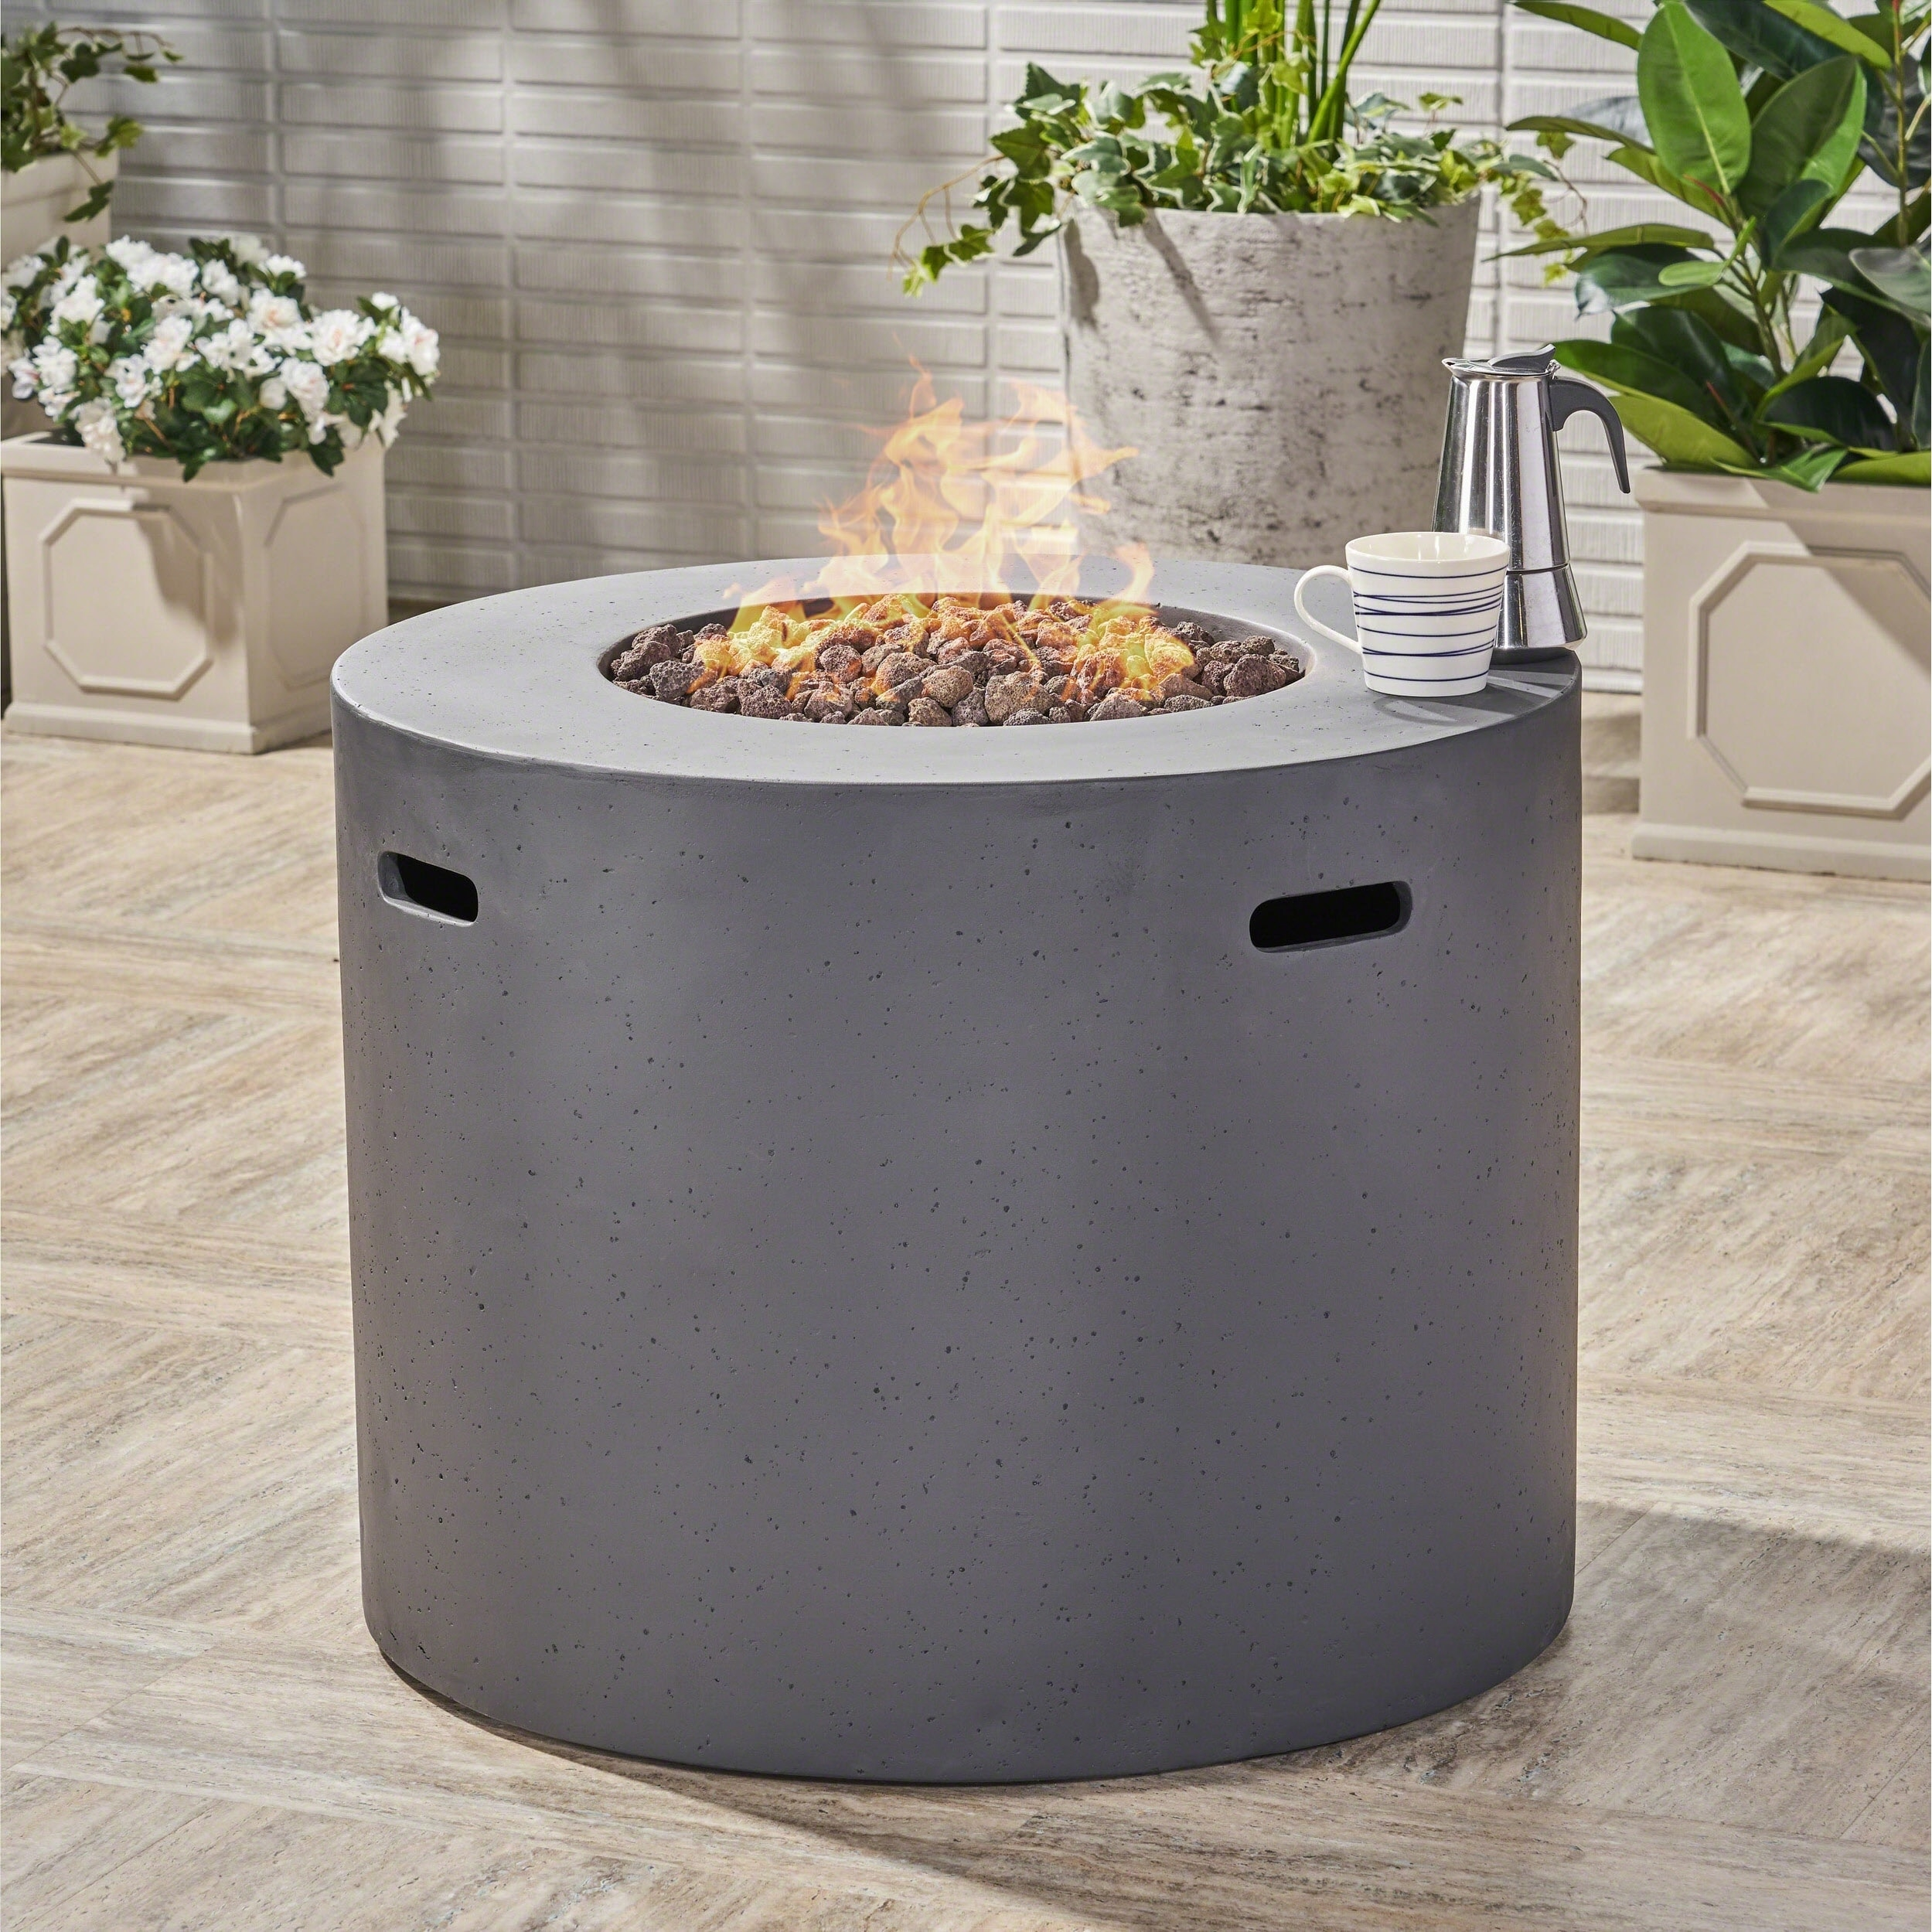 Outdoor Propane Fire Pit.Aidan Outdoor 31 Inch Circular Propane Fire Pit Table W Tank Holder By Christopher Knight Home N A